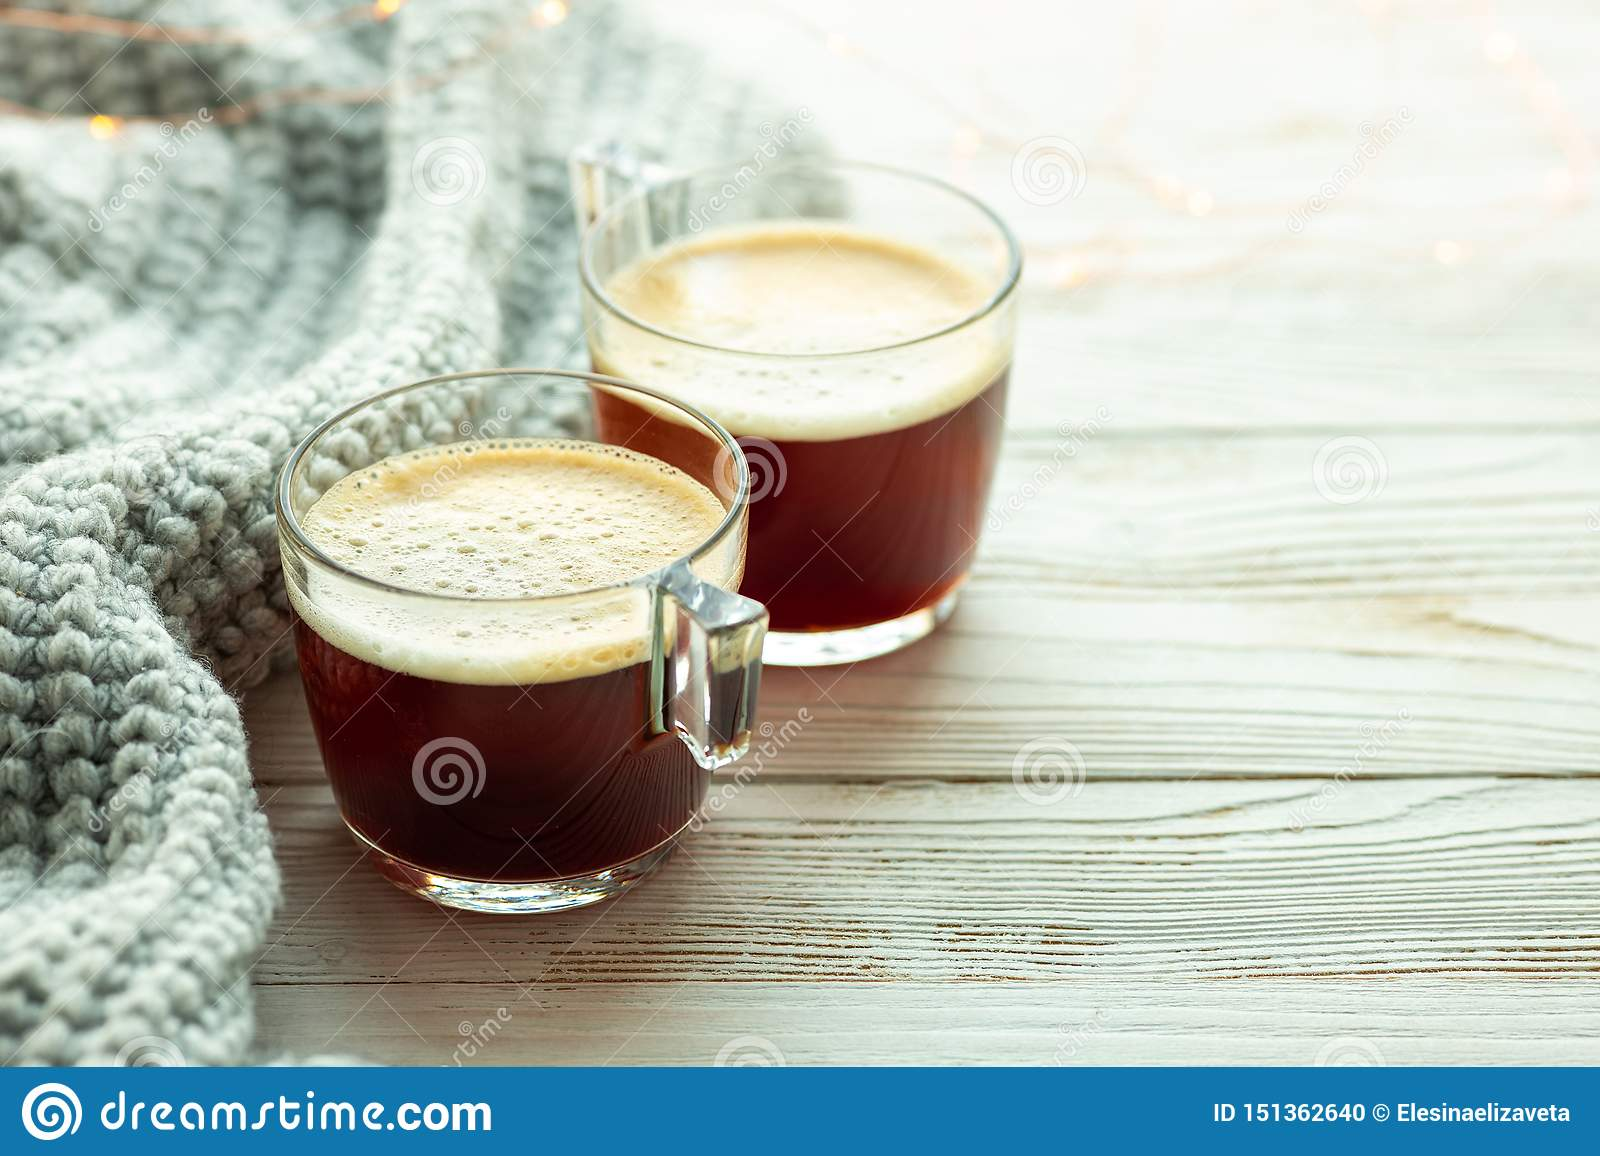 Two cups of coffee, warm knitted sweater on wooden background. Warm lights. Cozy winter morning